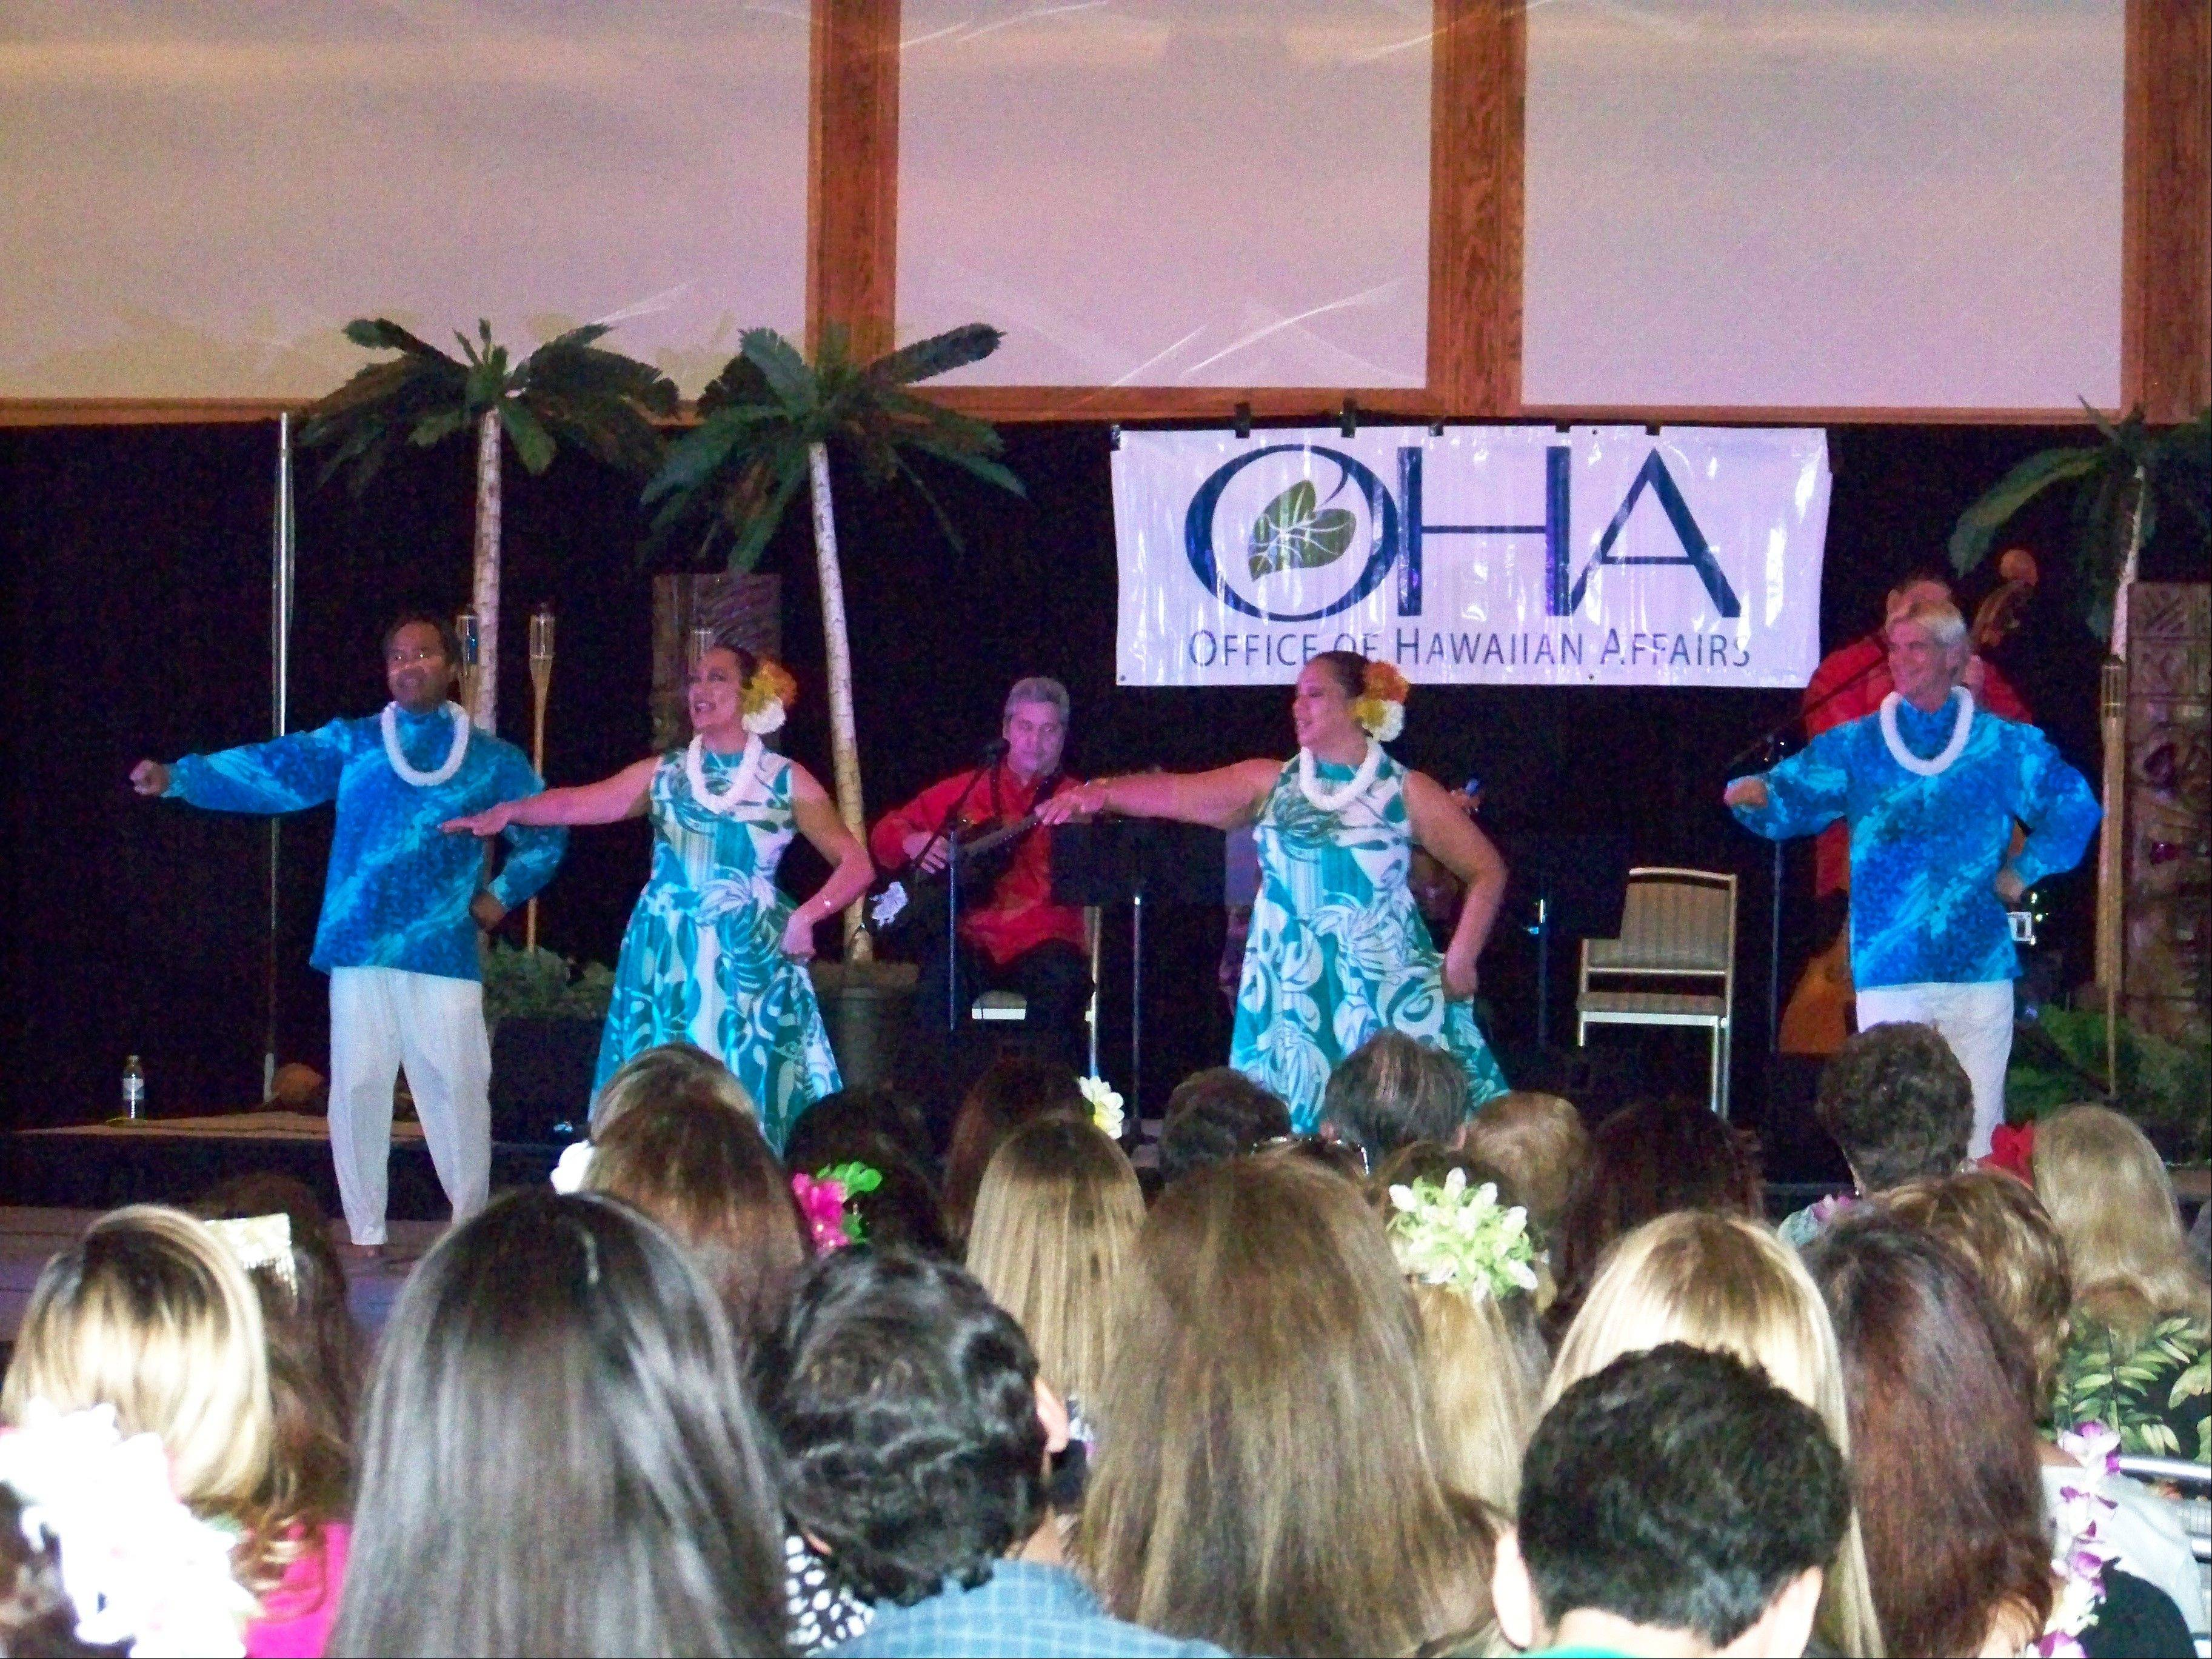 Hula dancers and participants in the hula days workshops perform for the public during the three-day event in September.